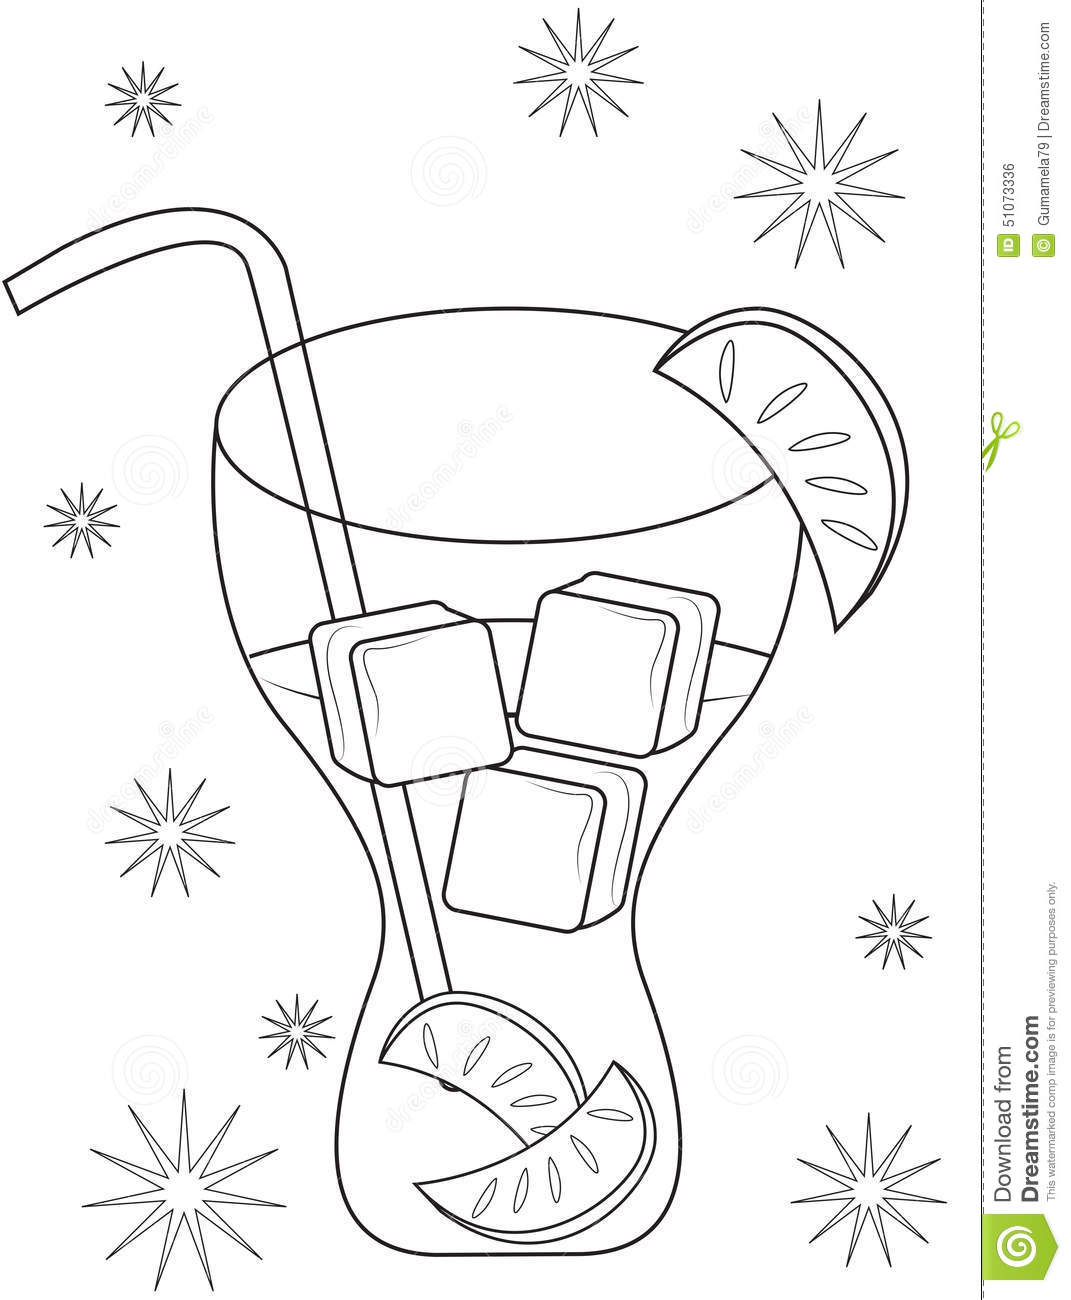 Colouring in juice - Lemon Juice Coloring Page